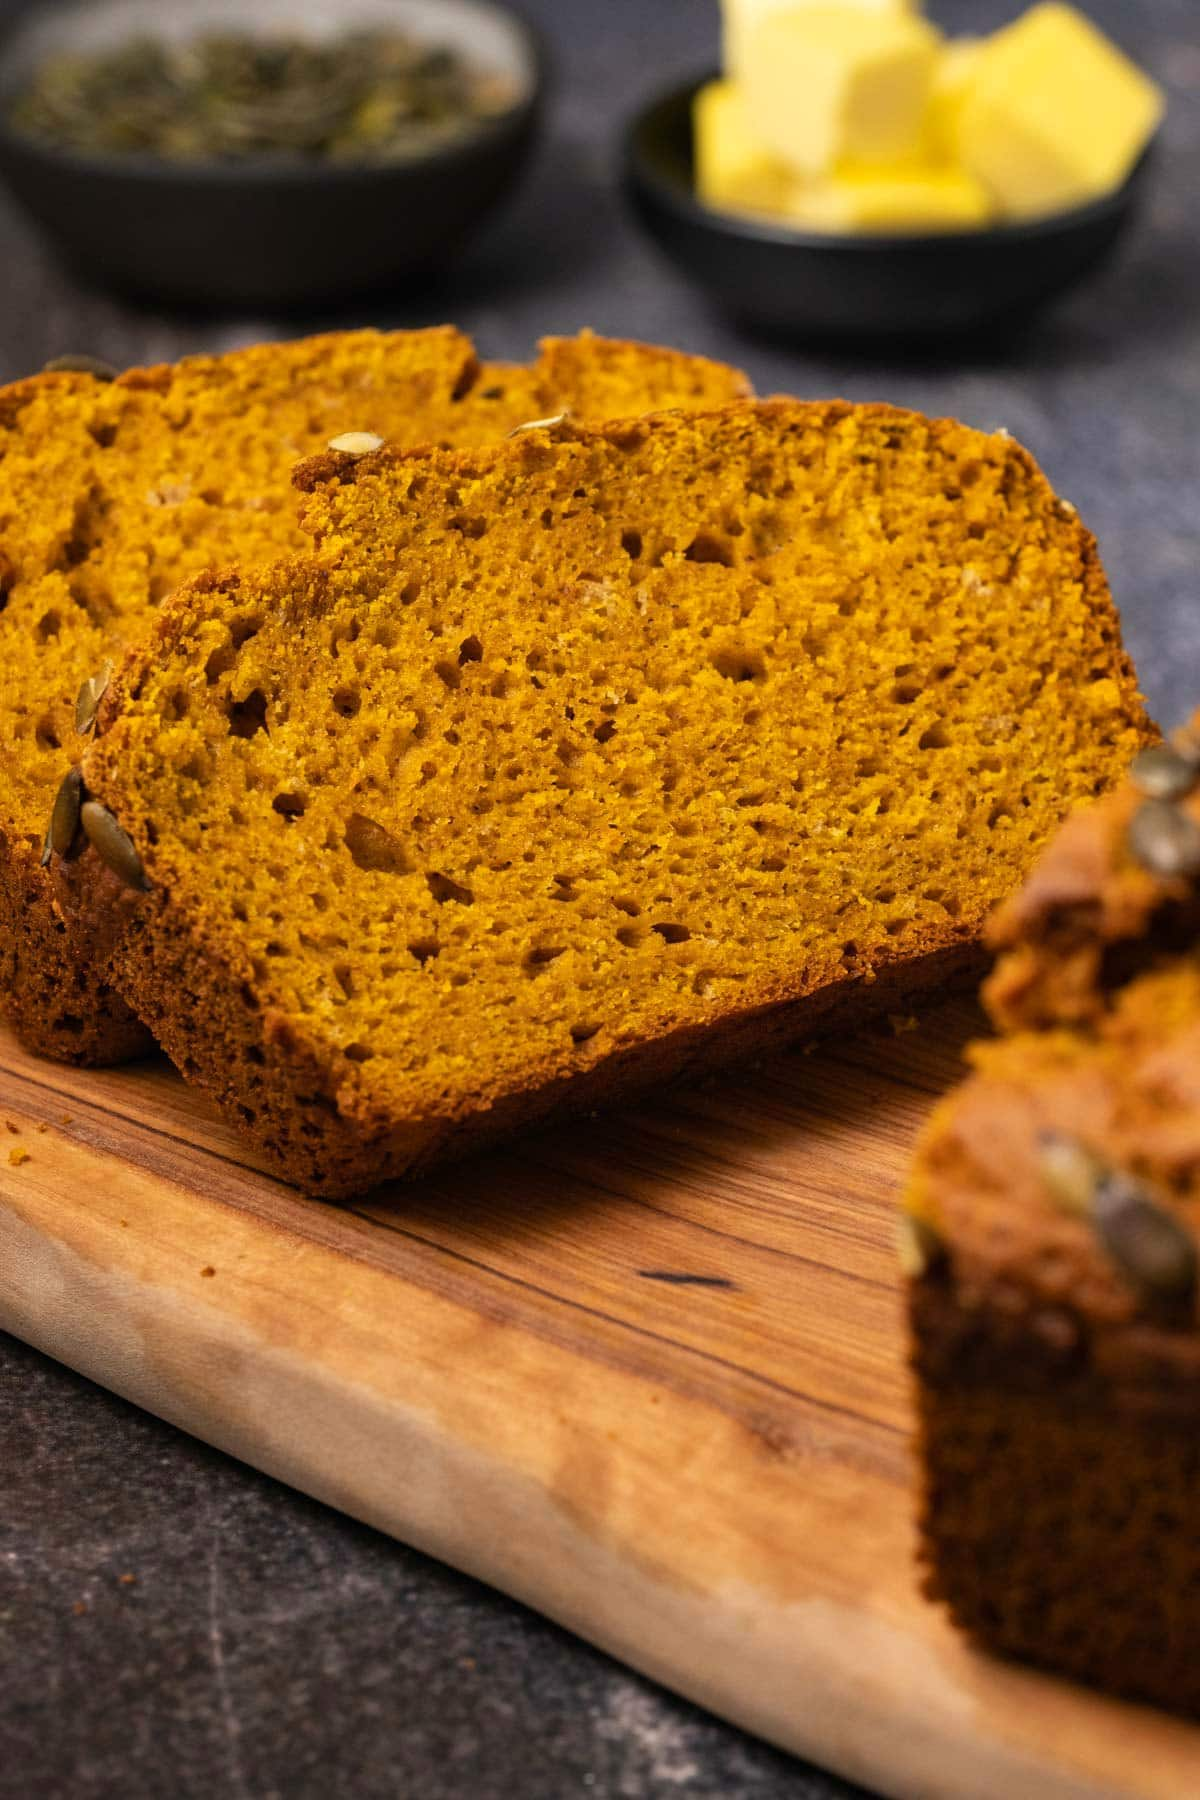 Slices of pumpkin bread on a wooden cutting board.